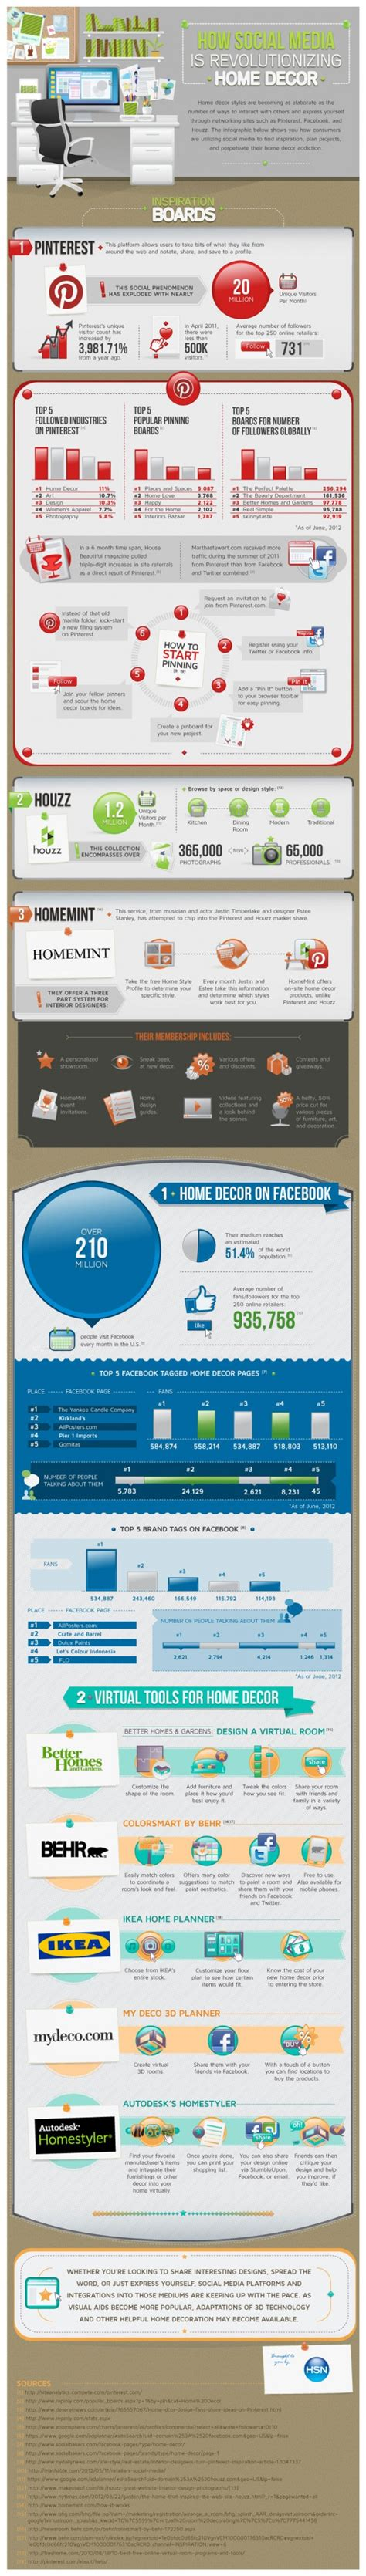 home decor infographic infographic how social media is revolutionizing home decor